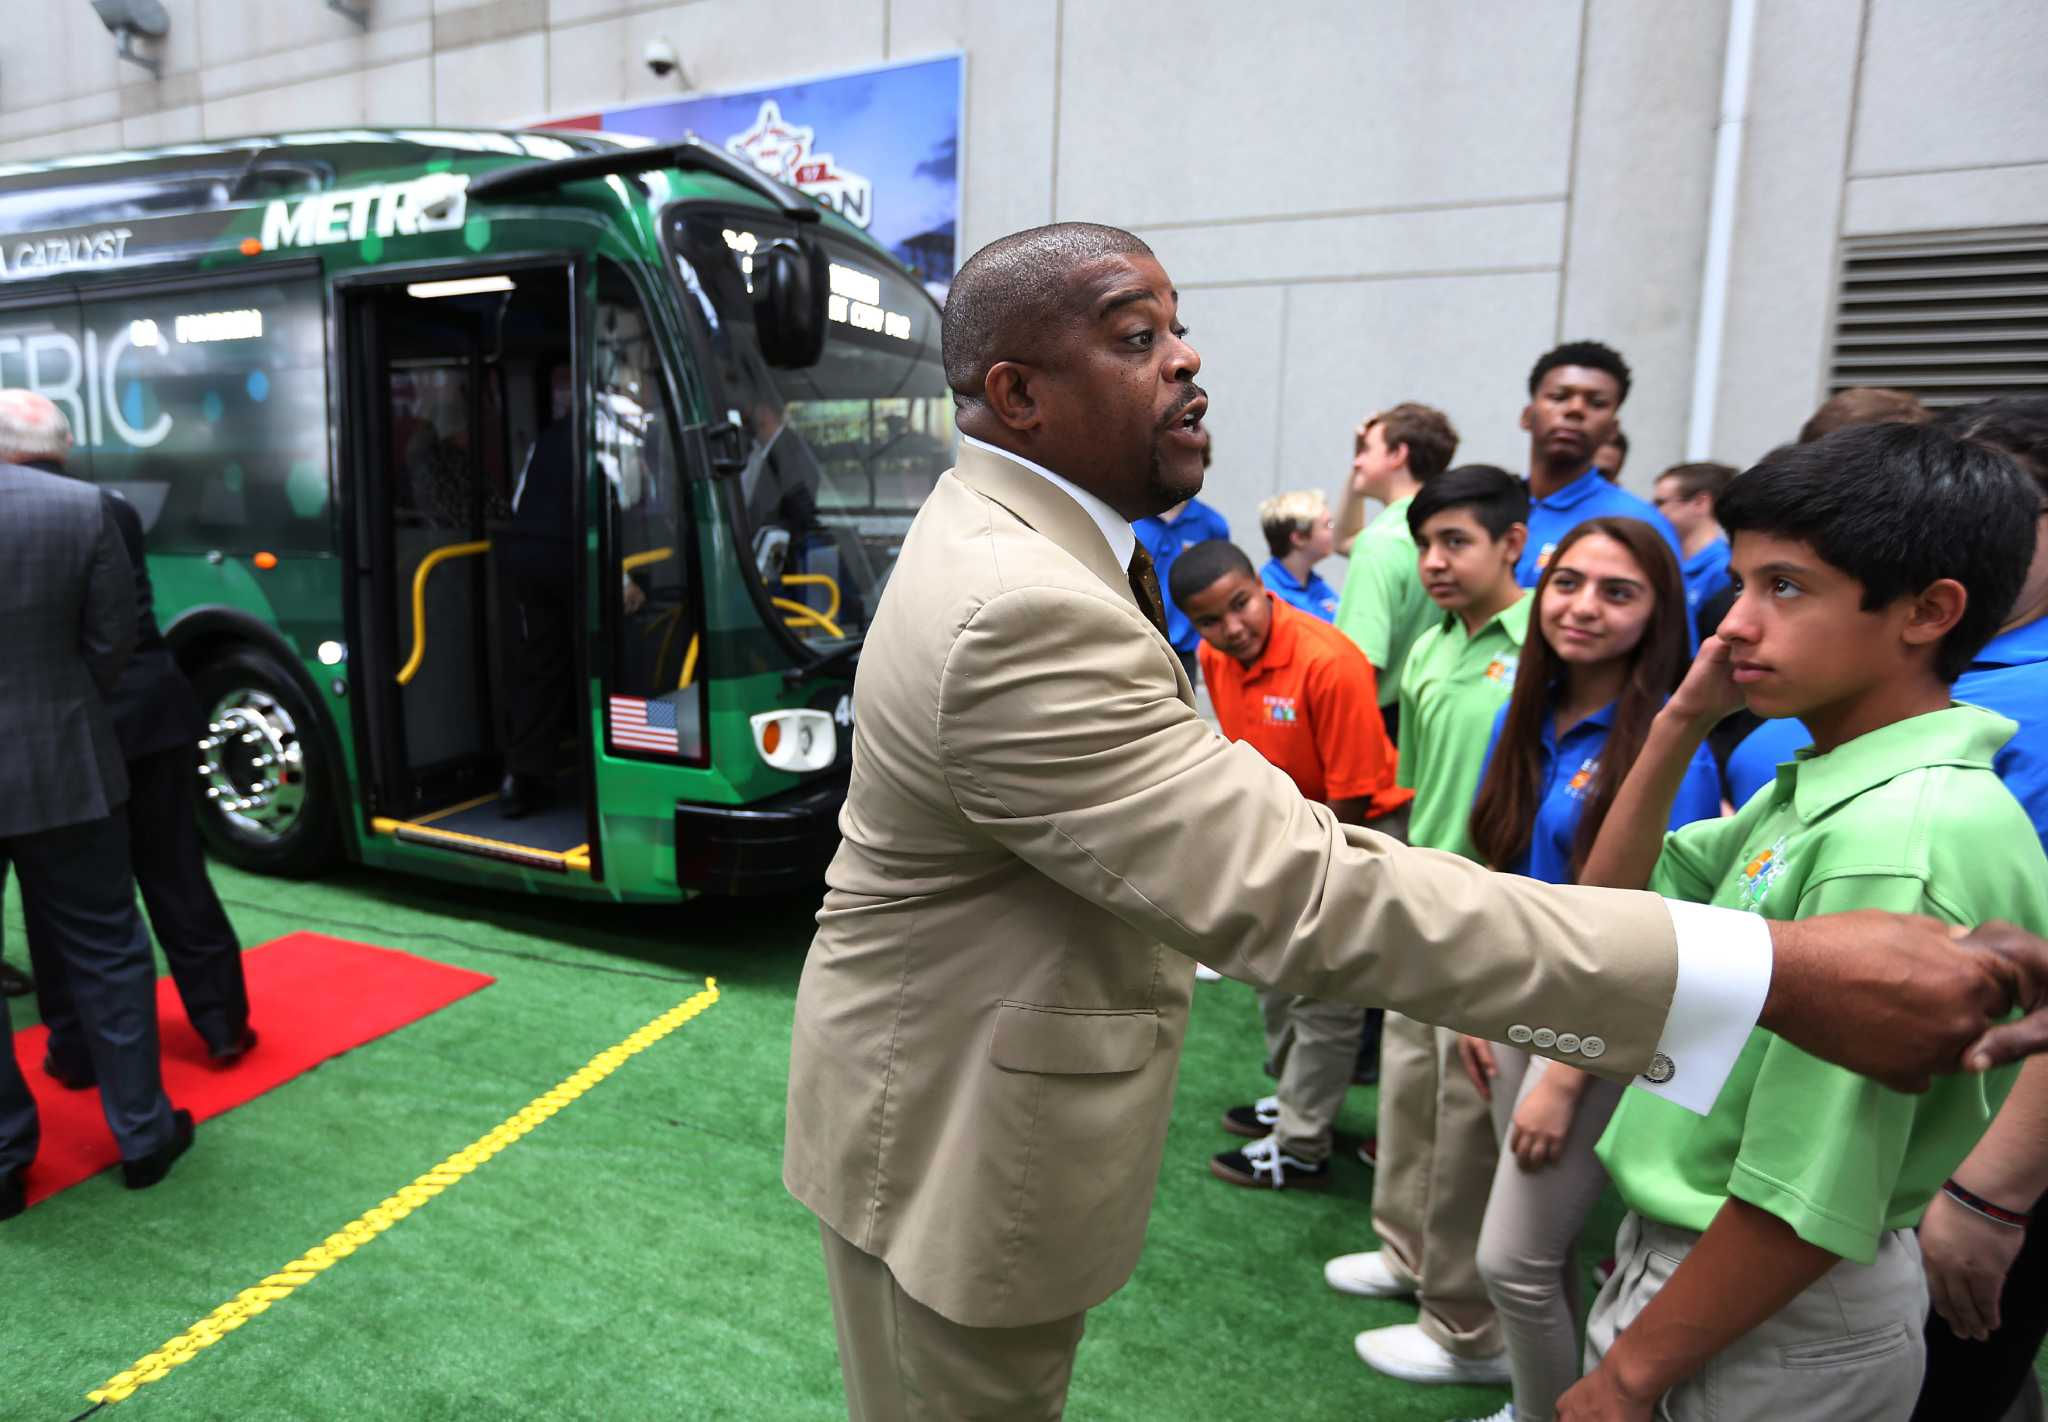 Metro To Introduce Electric Bus In Move Cut Pollution